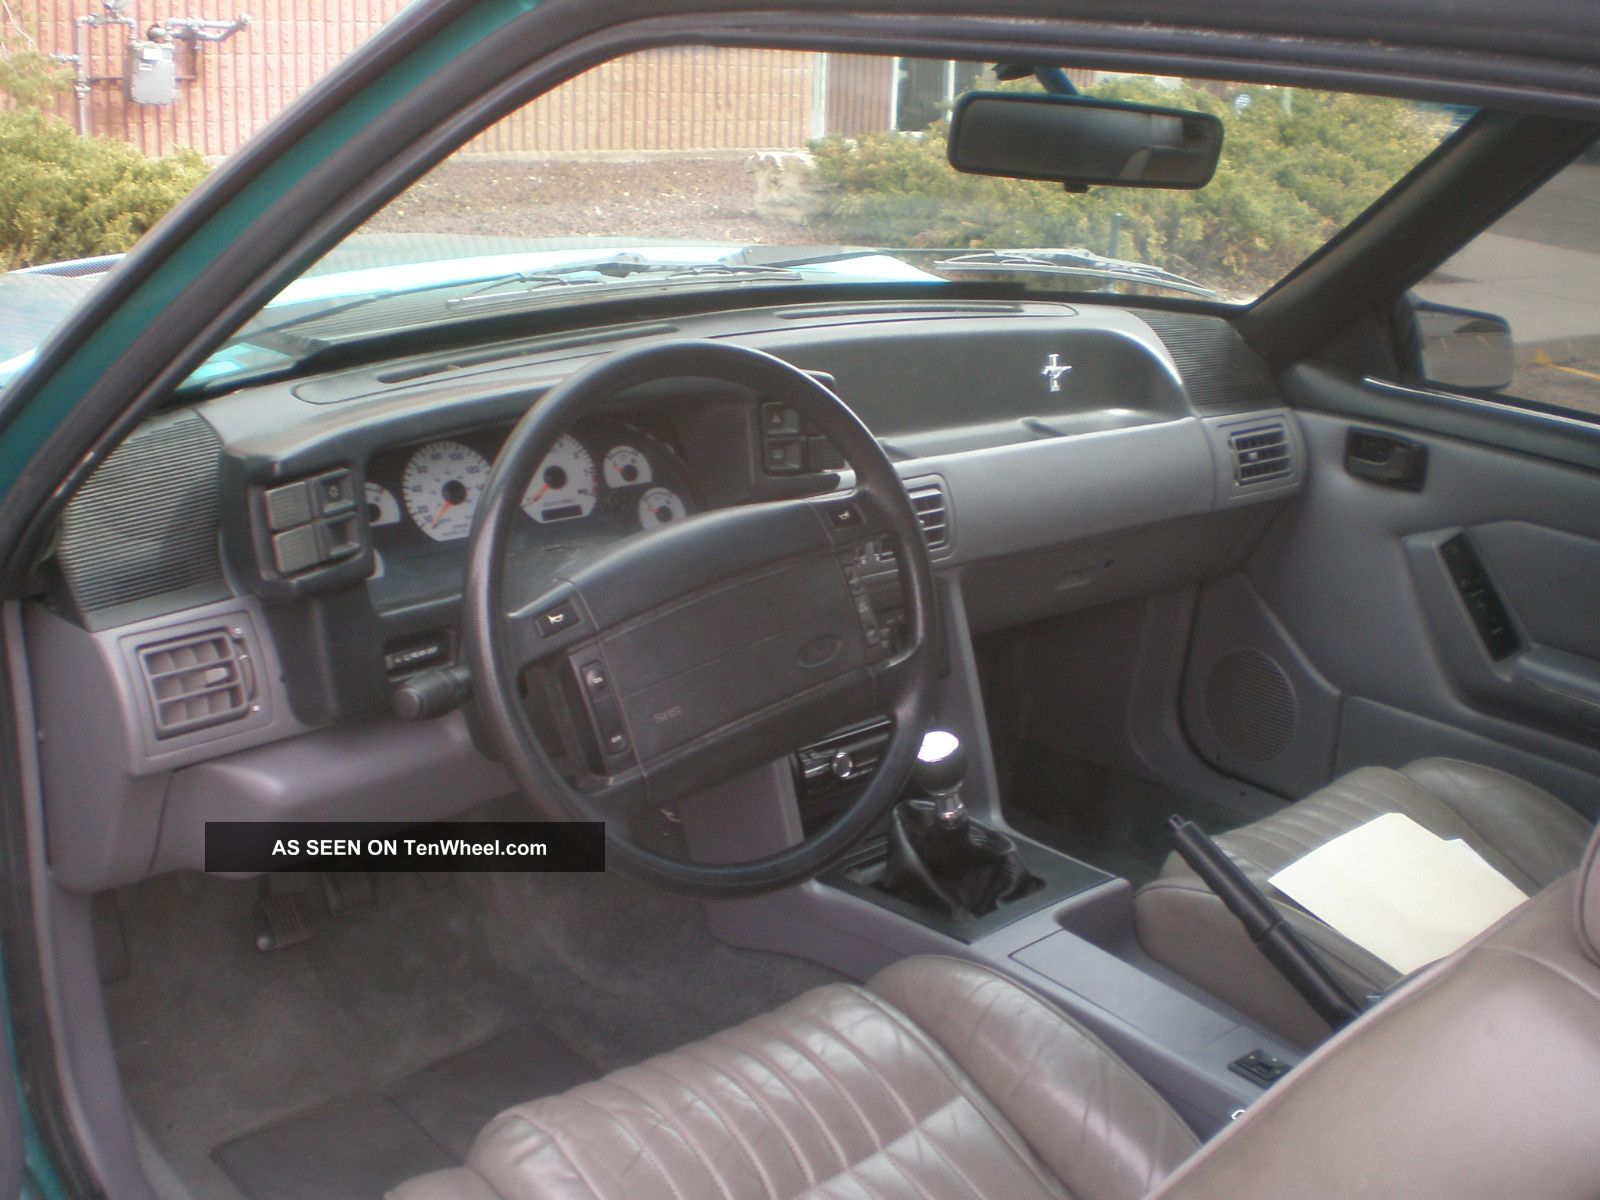 Mustang Notchback Dohc Cobra Swap With Lots Of Extras And Very Lgw